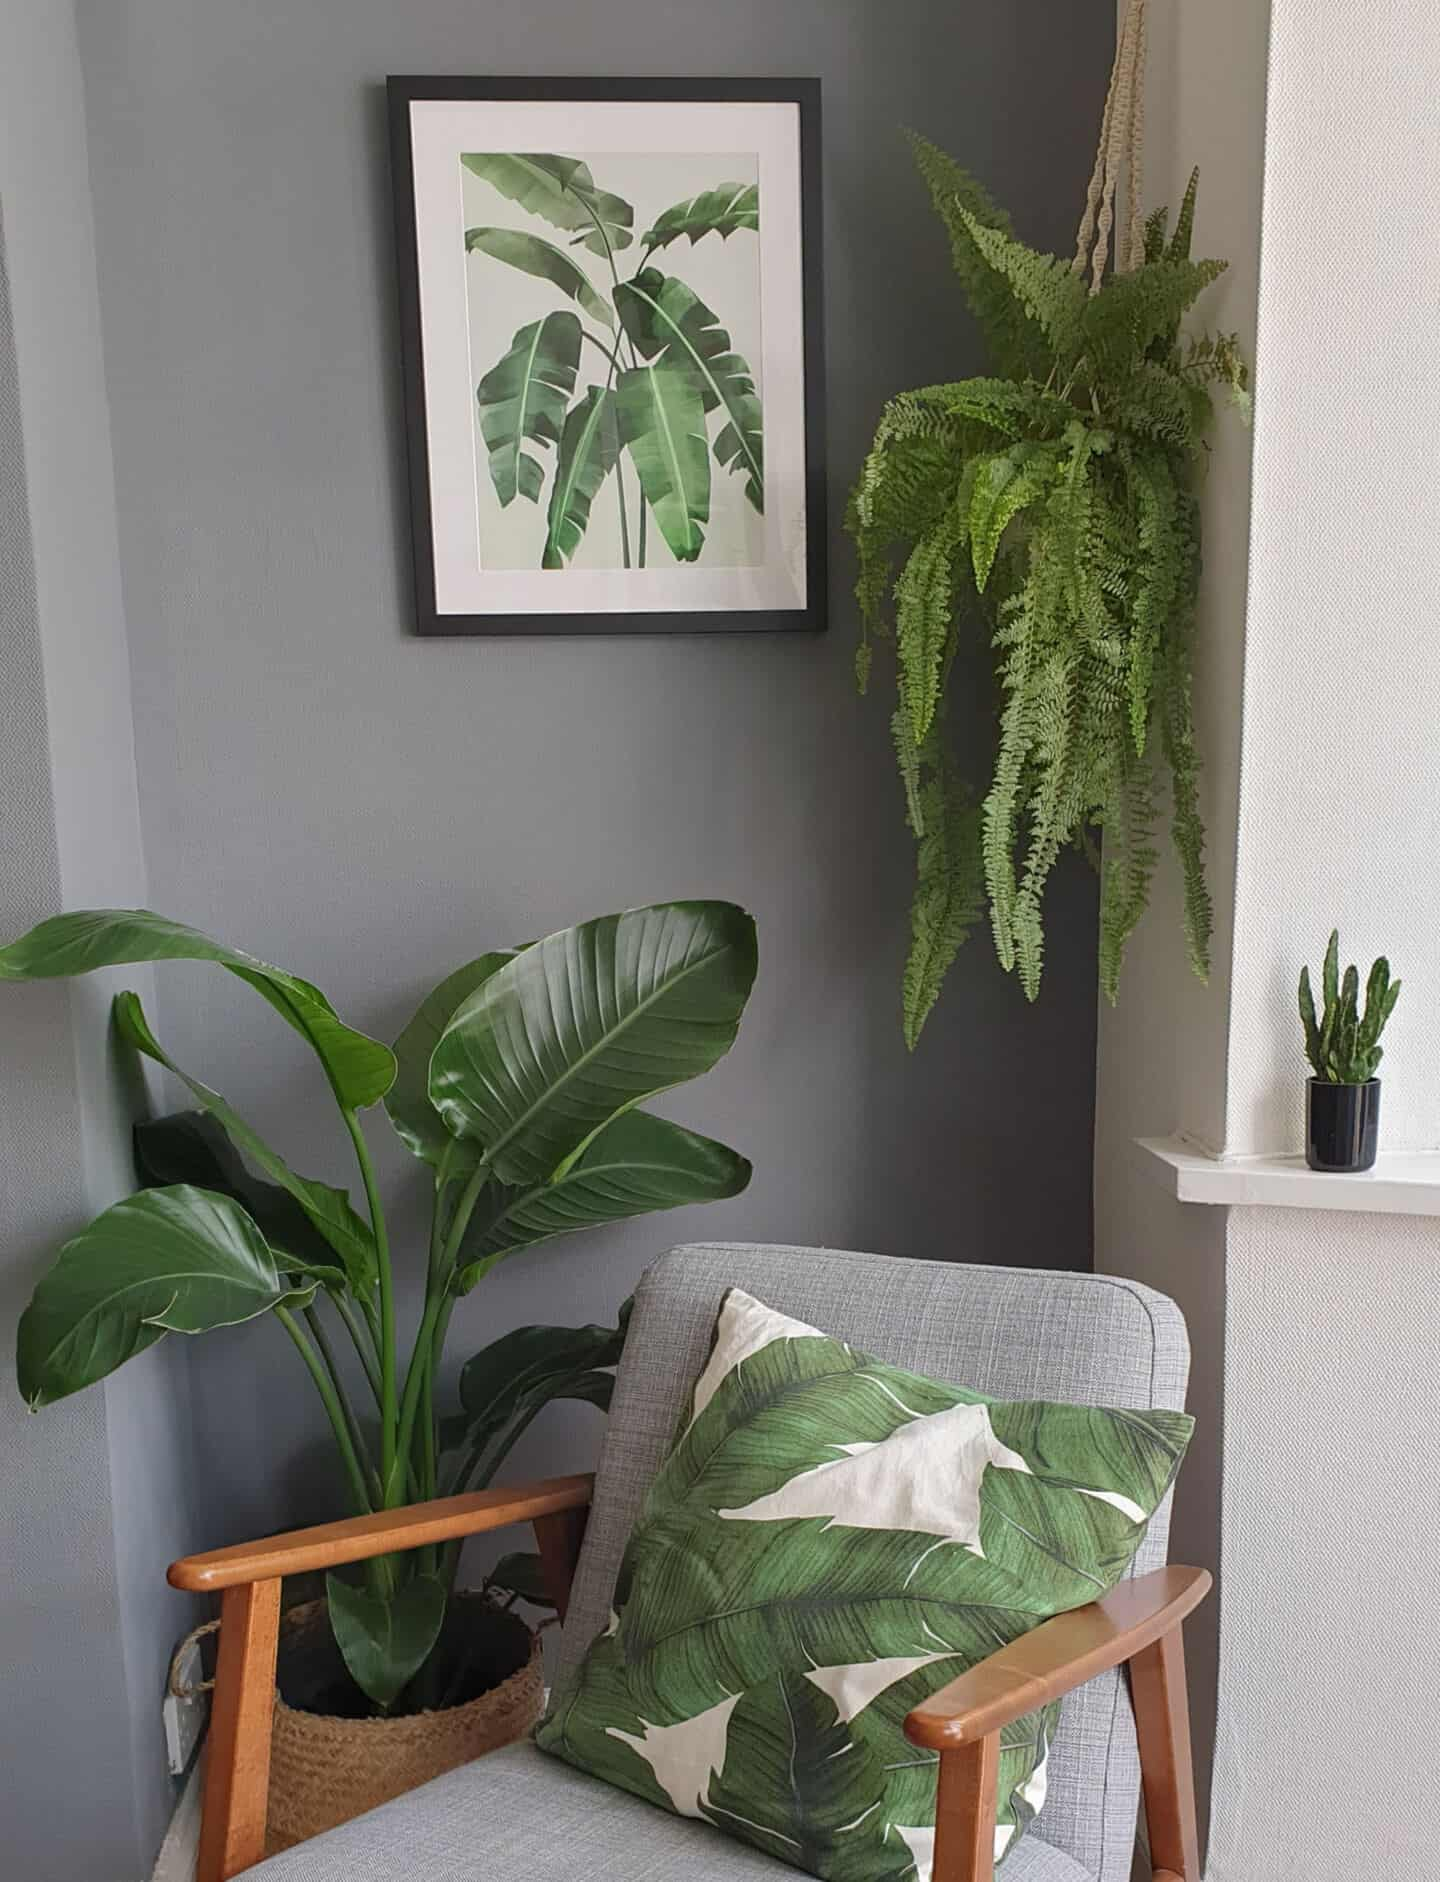 Botanical artwork inspired by Travel from Greenlili hung on a grey living room wall avove an ocassional chair and surrounded by plants